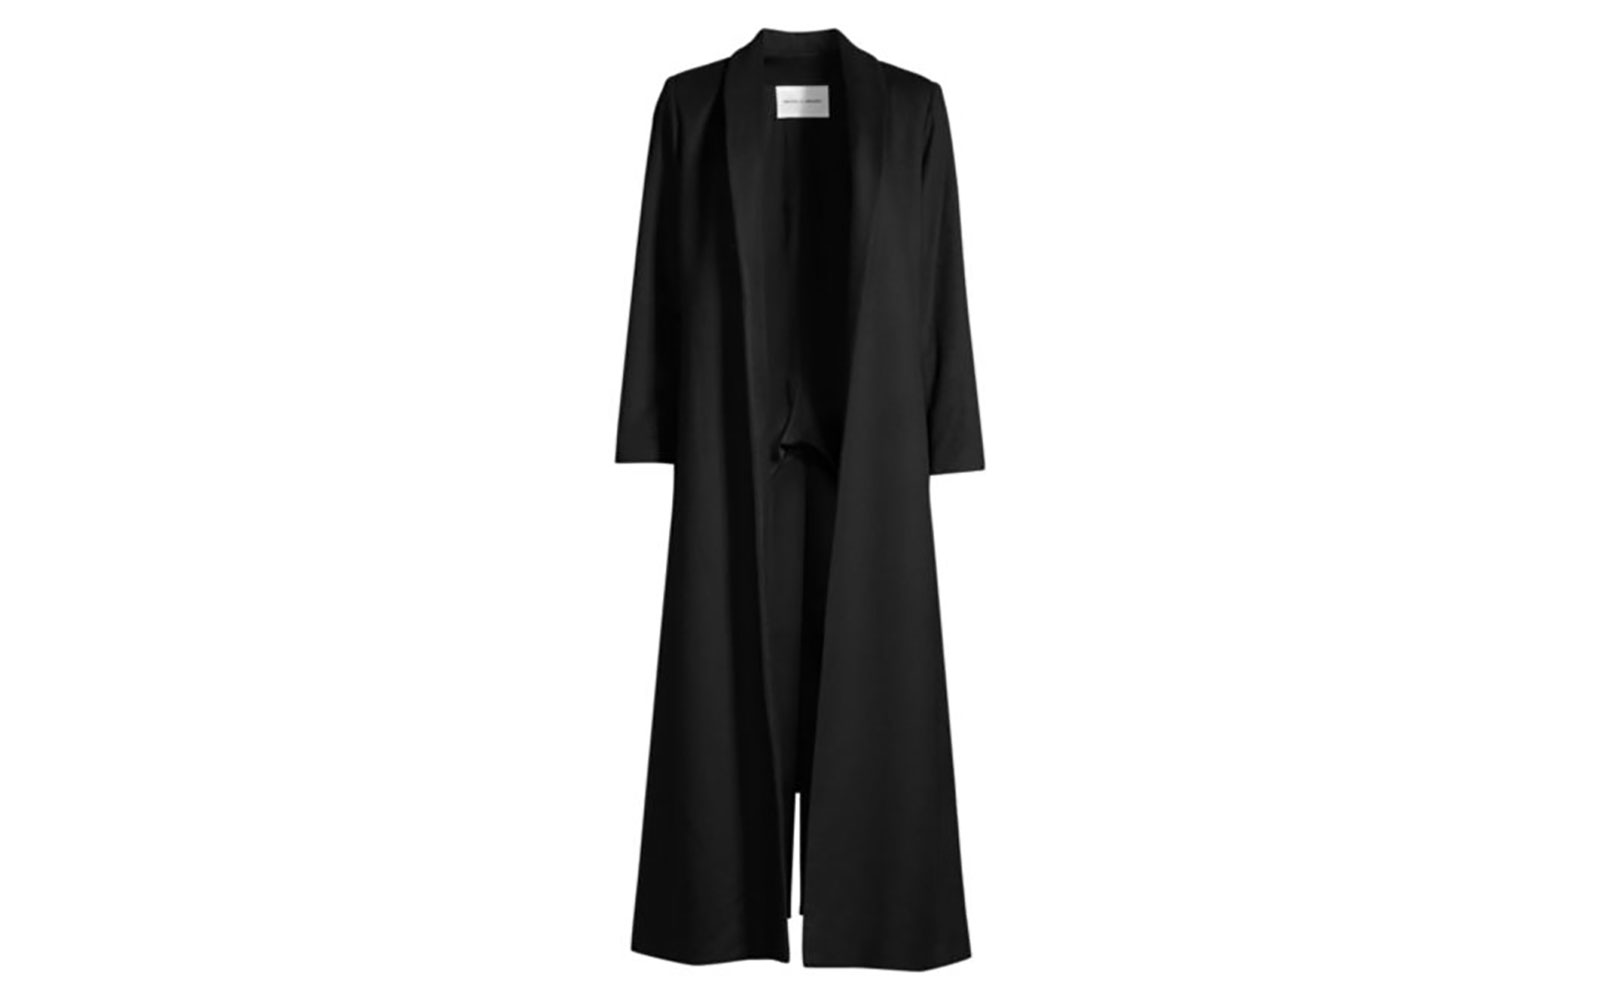 The Chloe Cashmere Duster Coat